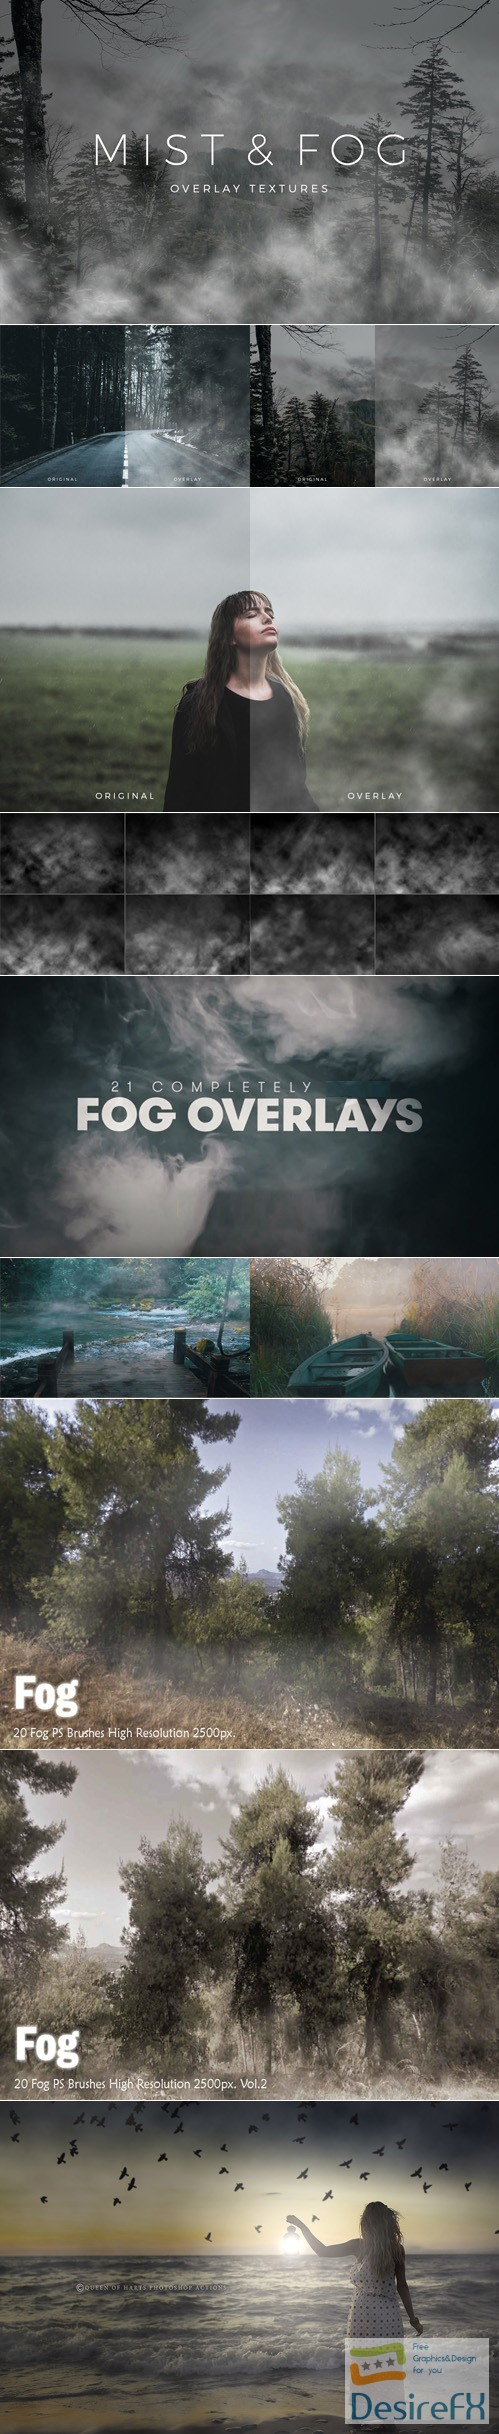 Desirefx com | Download Mist & Fog Overlay [Textures/PS Brushes]